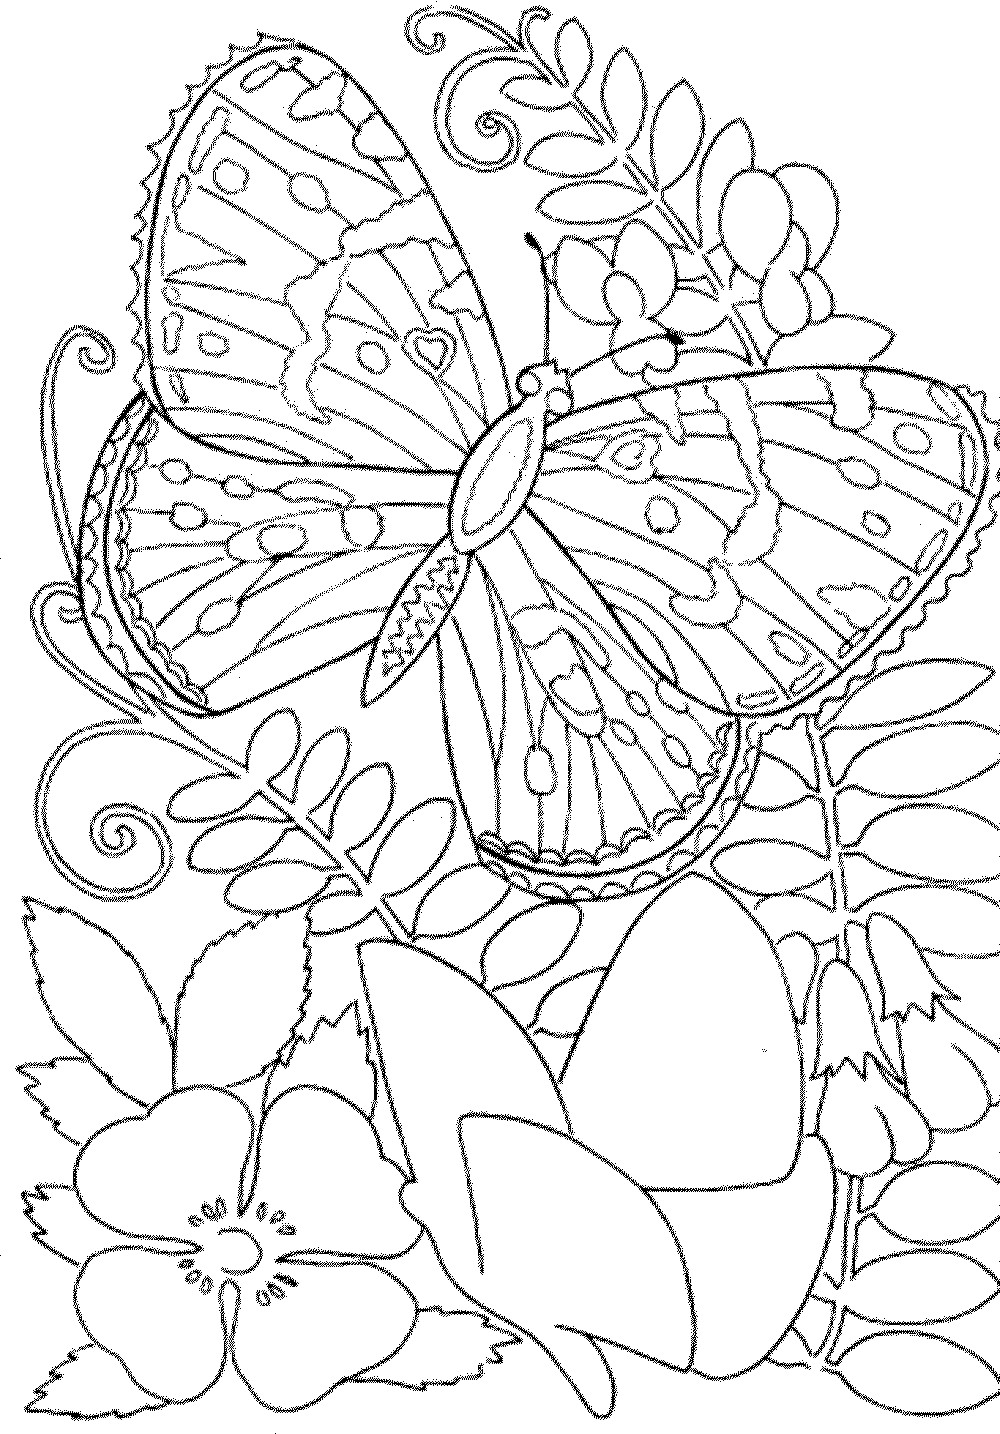 Printable Coloring Pages For Men  Coloring Pages for Adults Free Printable 42 Collections